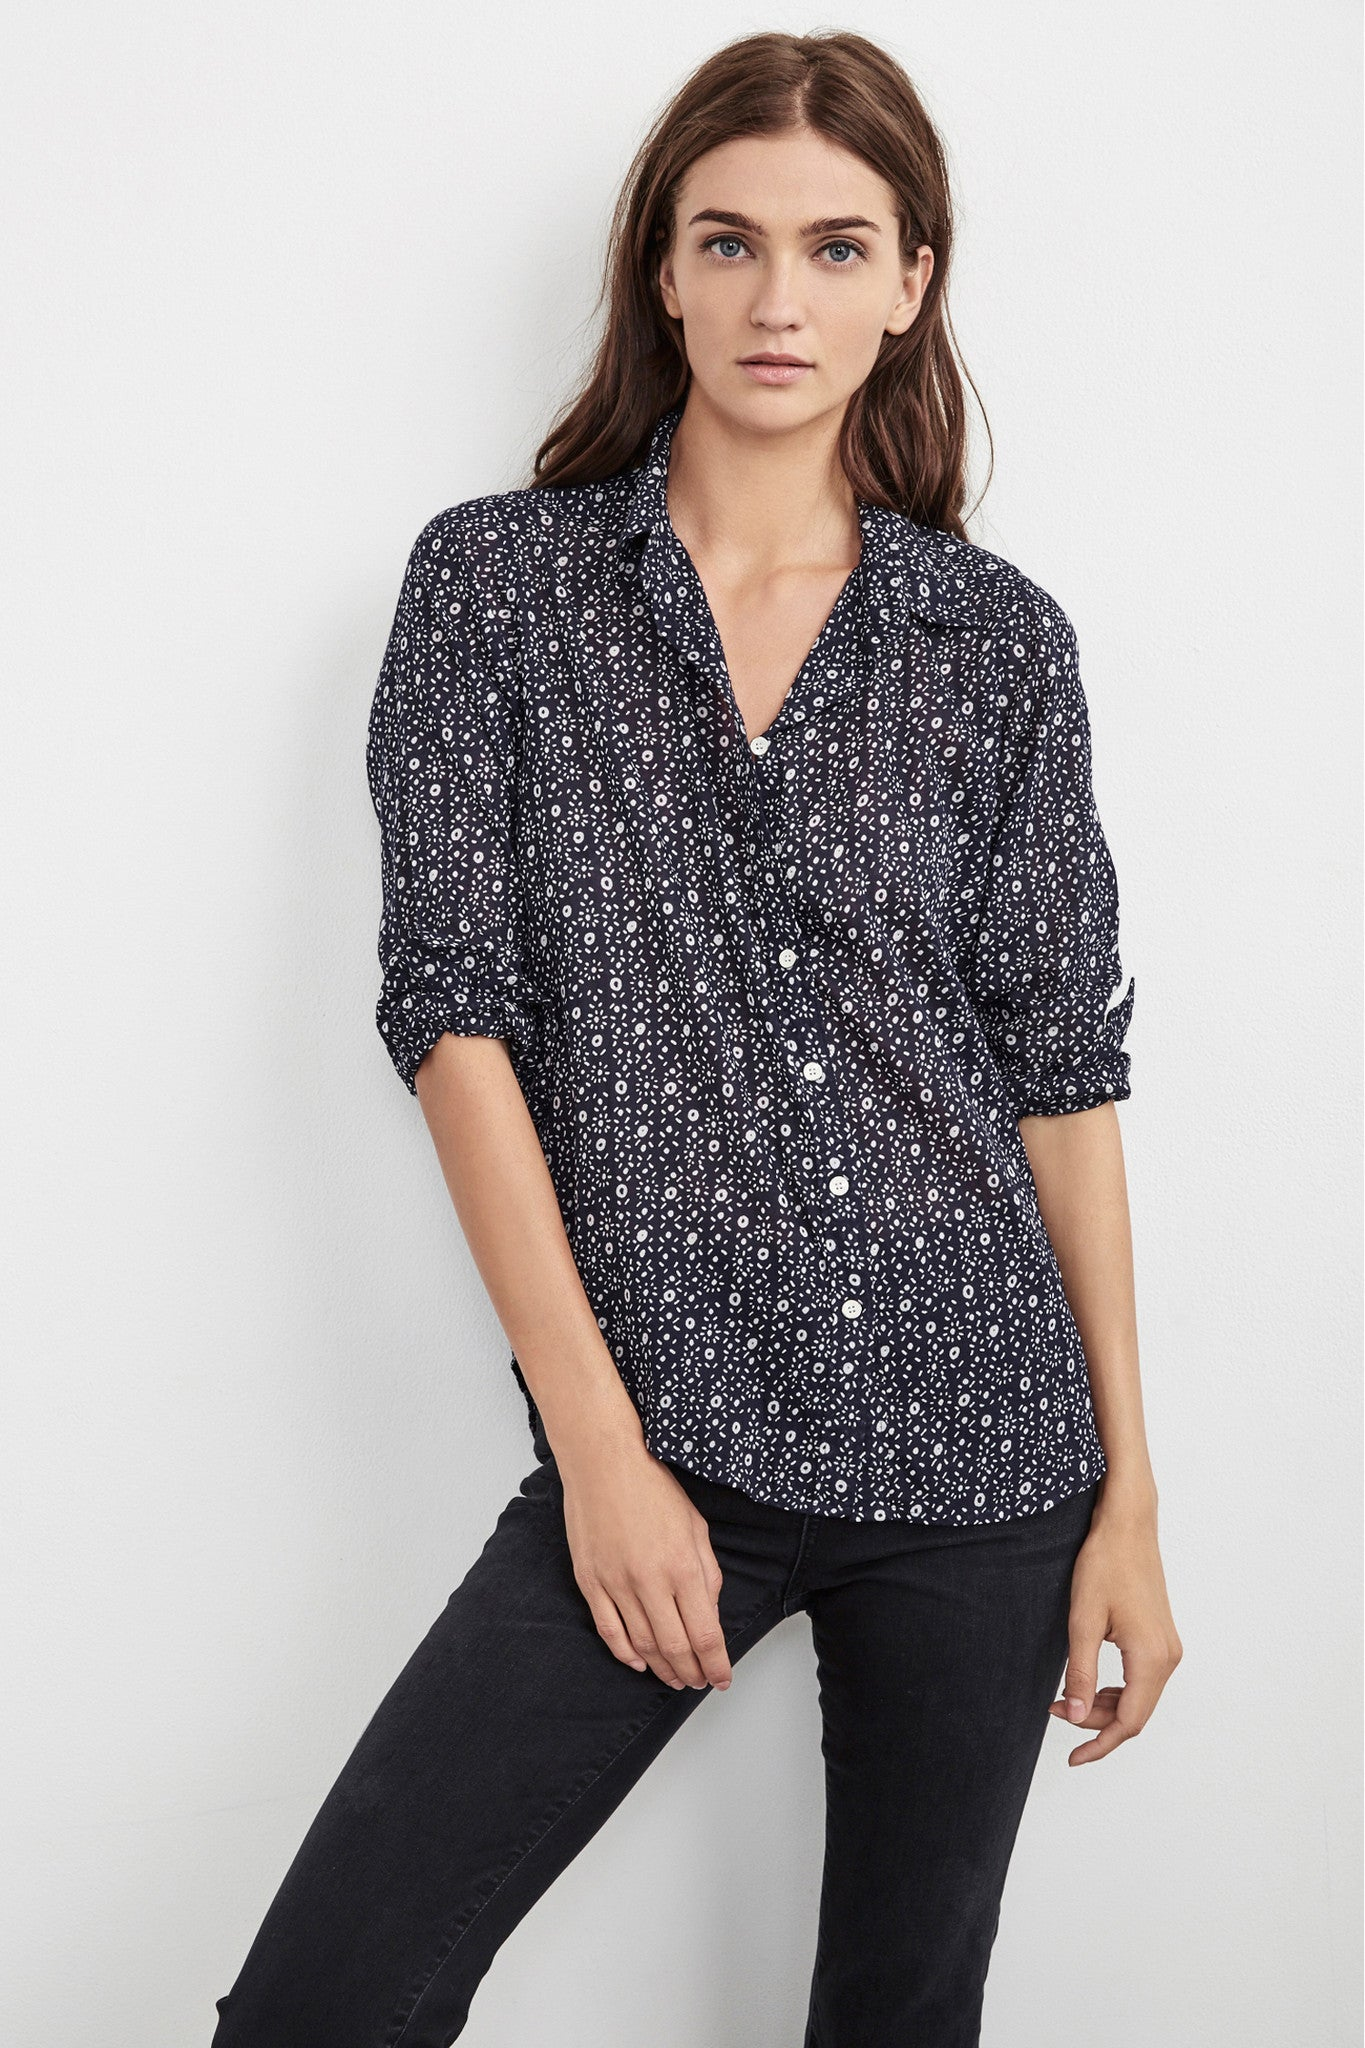 EMERY COTTON BUTTON-UP SHIRT IN PRINTED NAVY